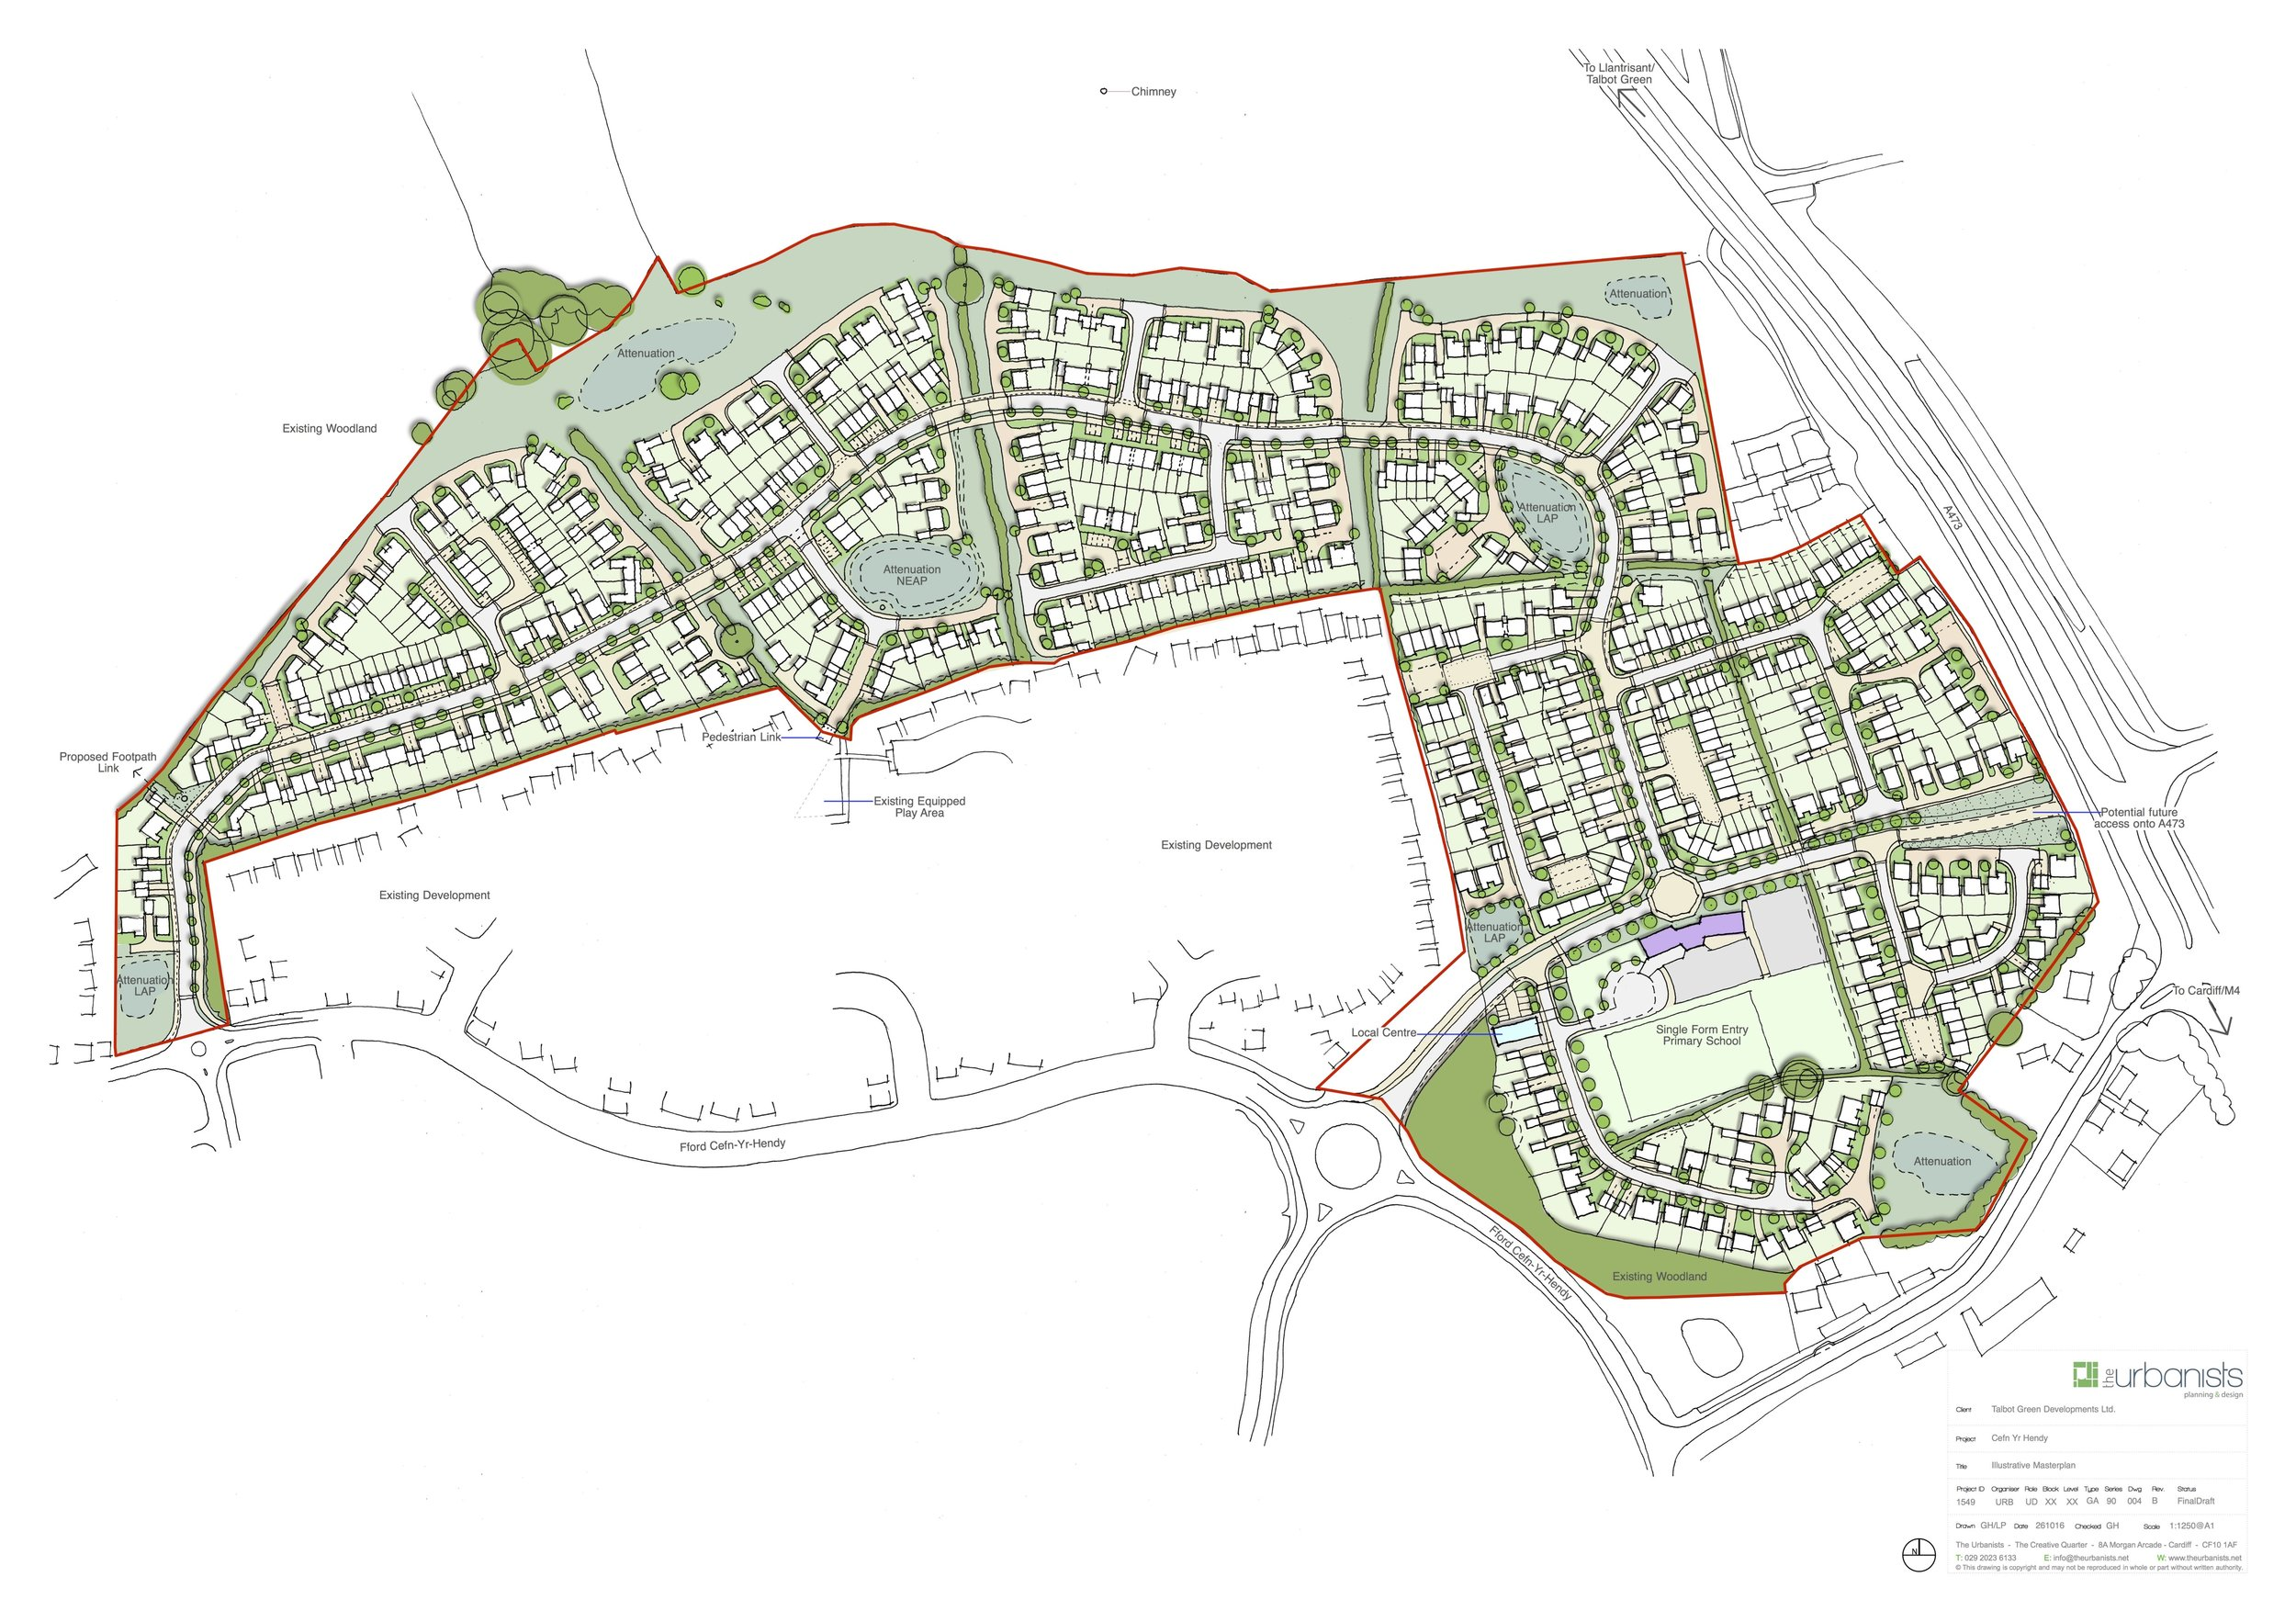 Illustrative masterplan for 460 dwellings and new open space